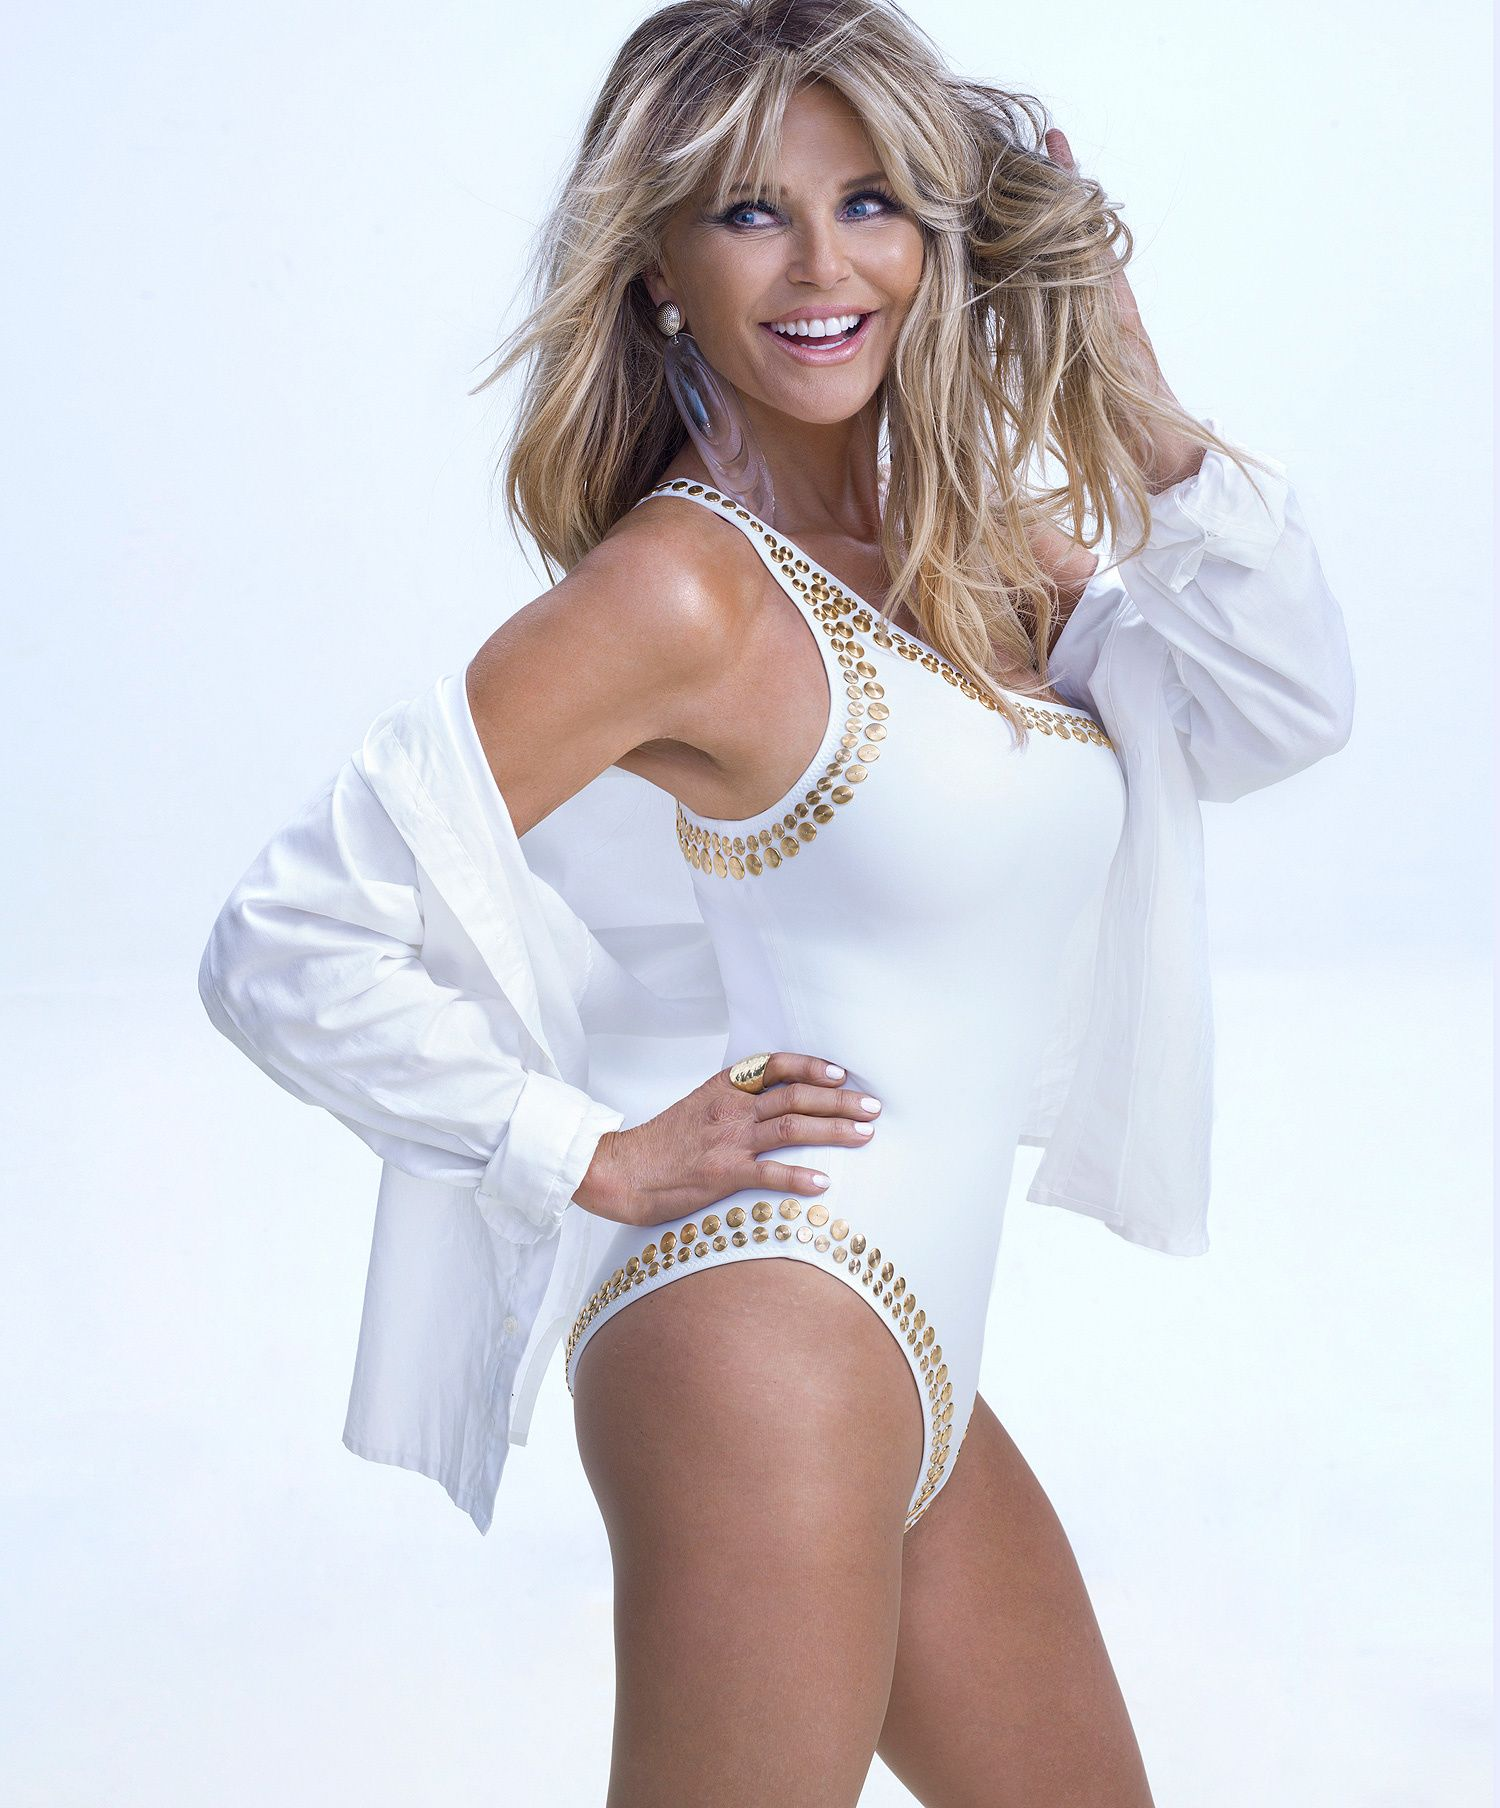 a805c836a4 Naked and Not Afraid! Christie Brinkley